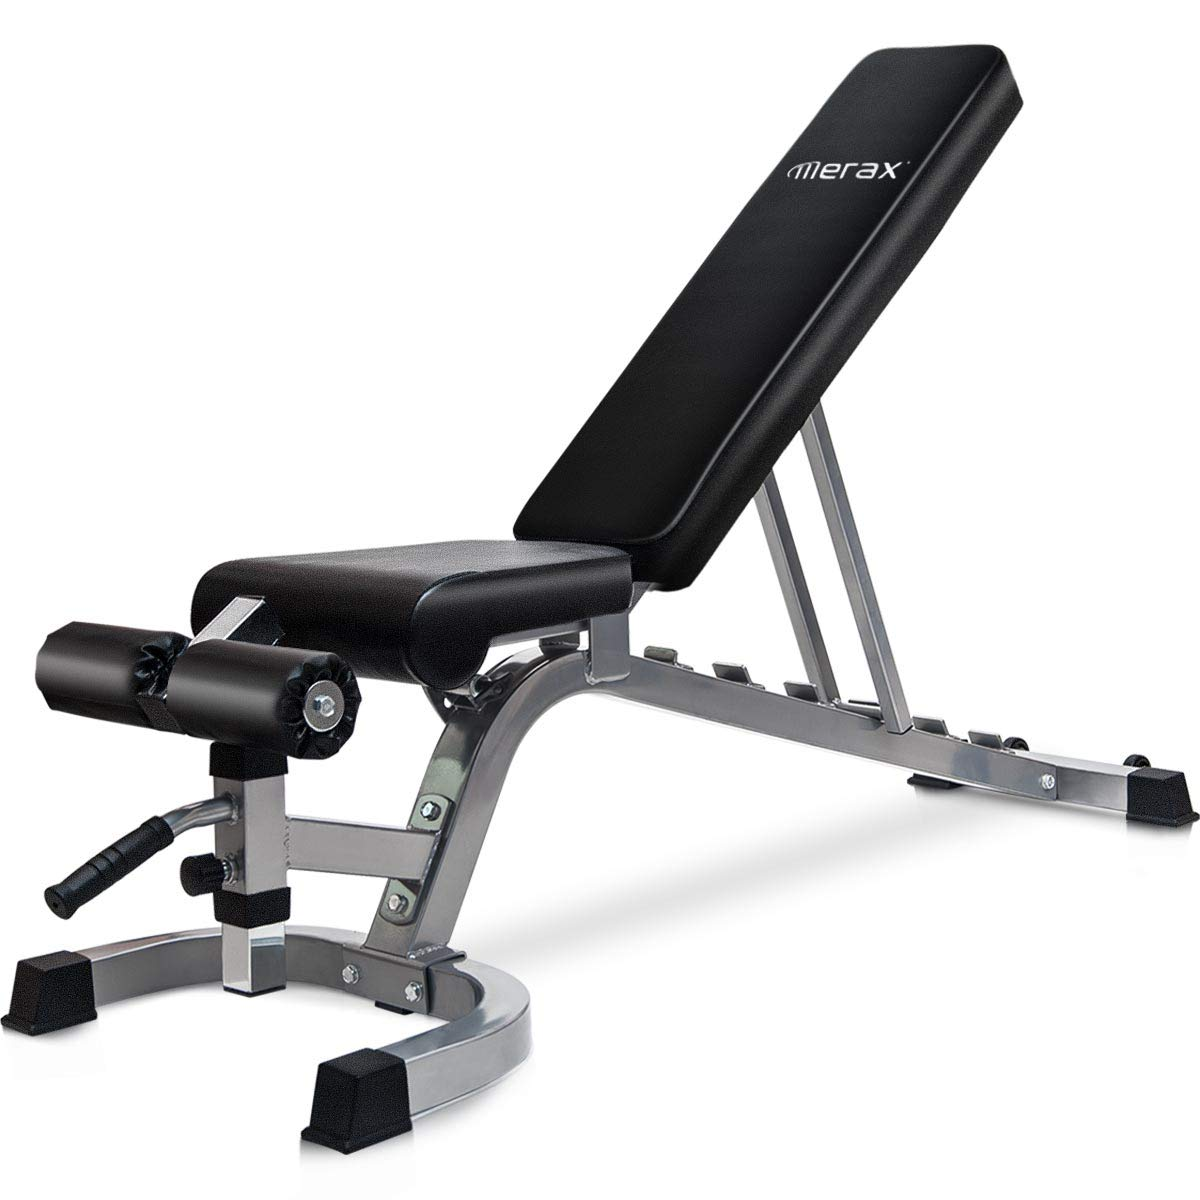 Merax Deluxe Utility Weight Bench Adjutable Sit Up AB Incline Bench Home Gym Equipment (Gray)